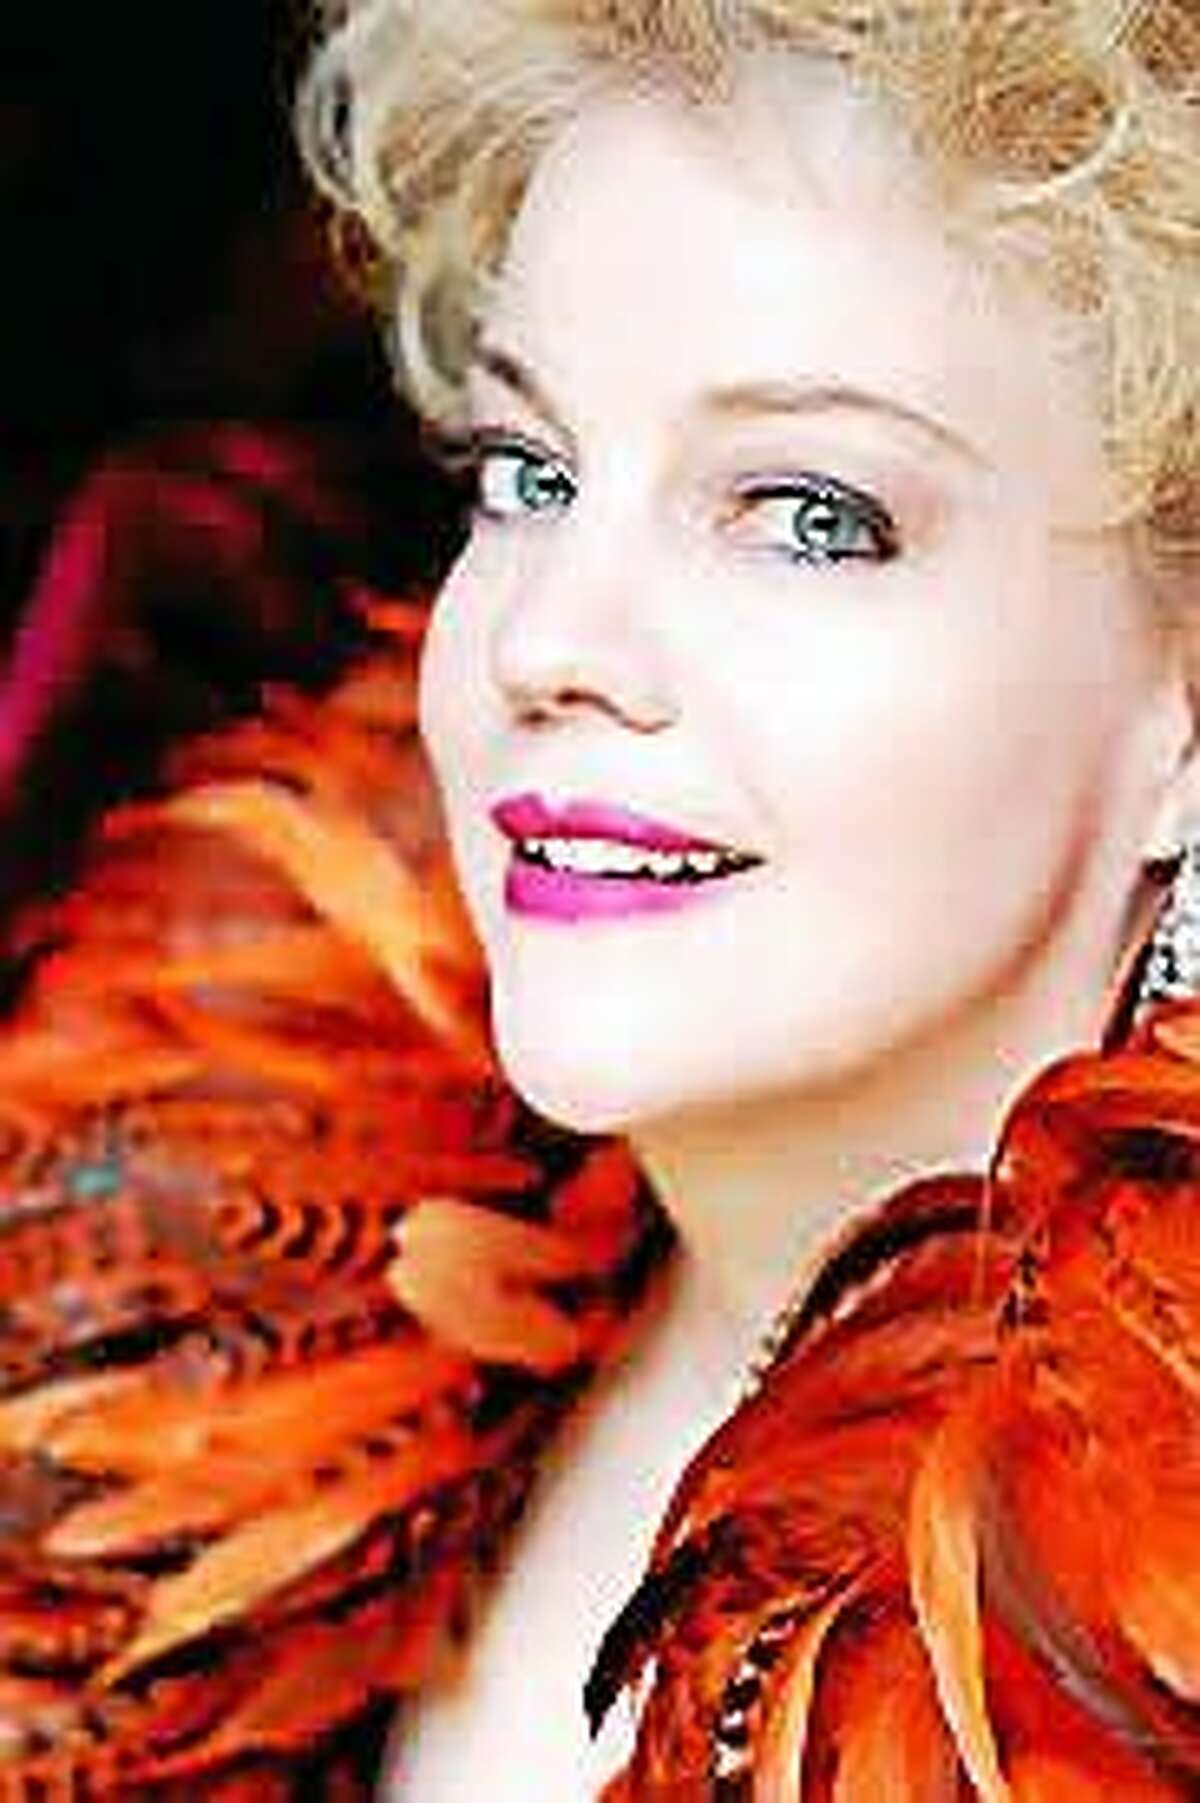 www.theaterpizzazz.com KT Sullivan performs at the Warner Thgeatre June 26 in a gala show to benefit Greenwoods Counseling Referrals.